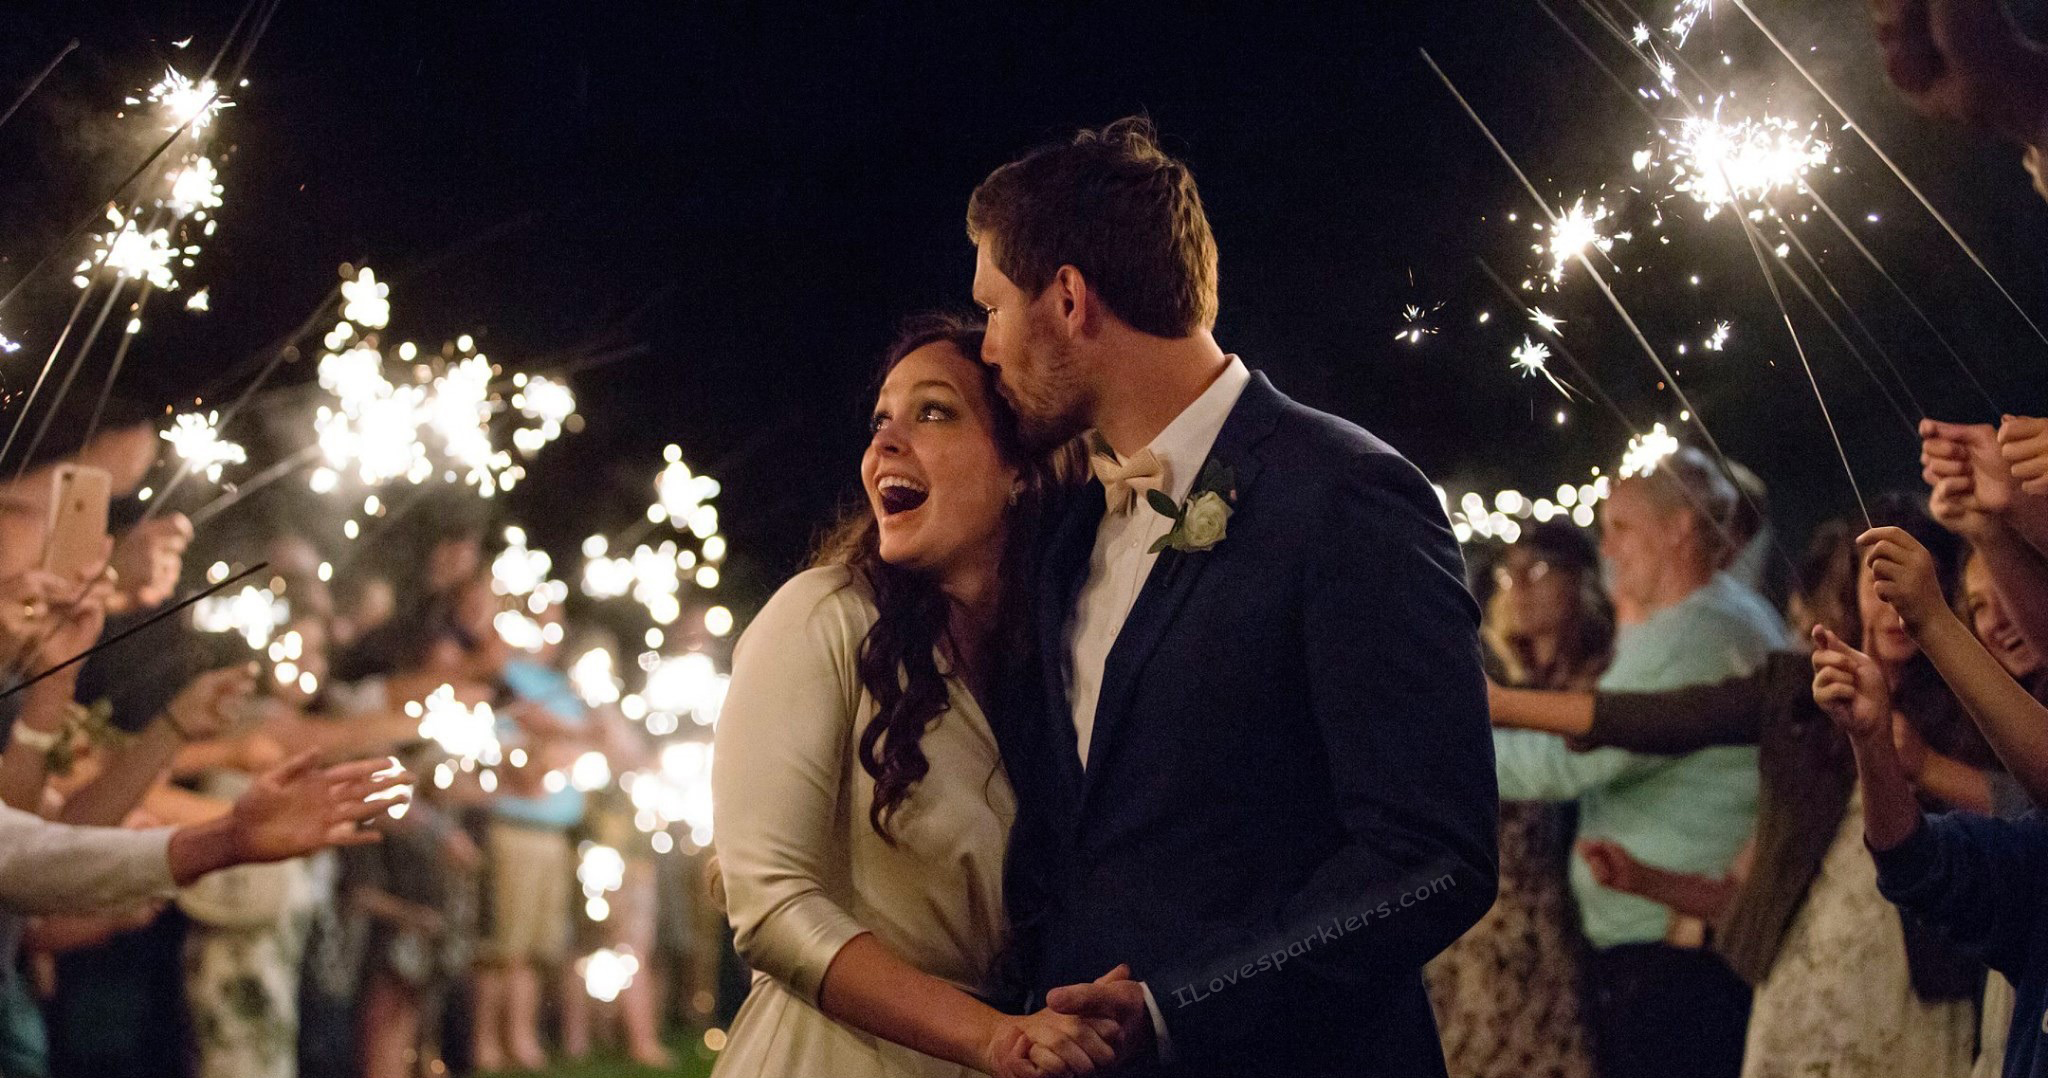 Try Our Wedding Sparklers Packages To Delight Your Guests Wedding Sparklers Outlet Blog